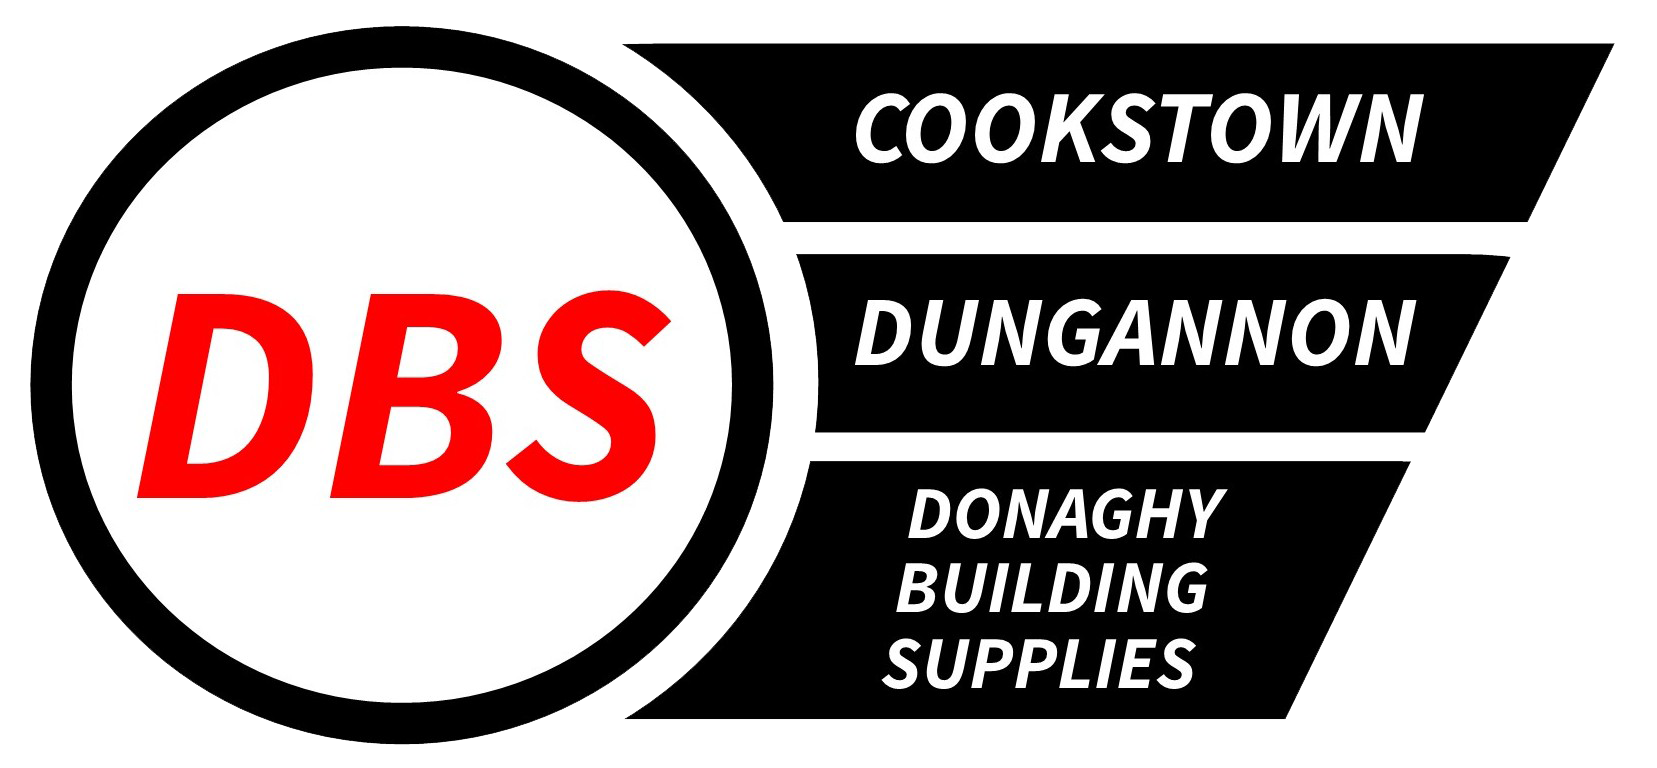 DBS Donaghy Building Supplies